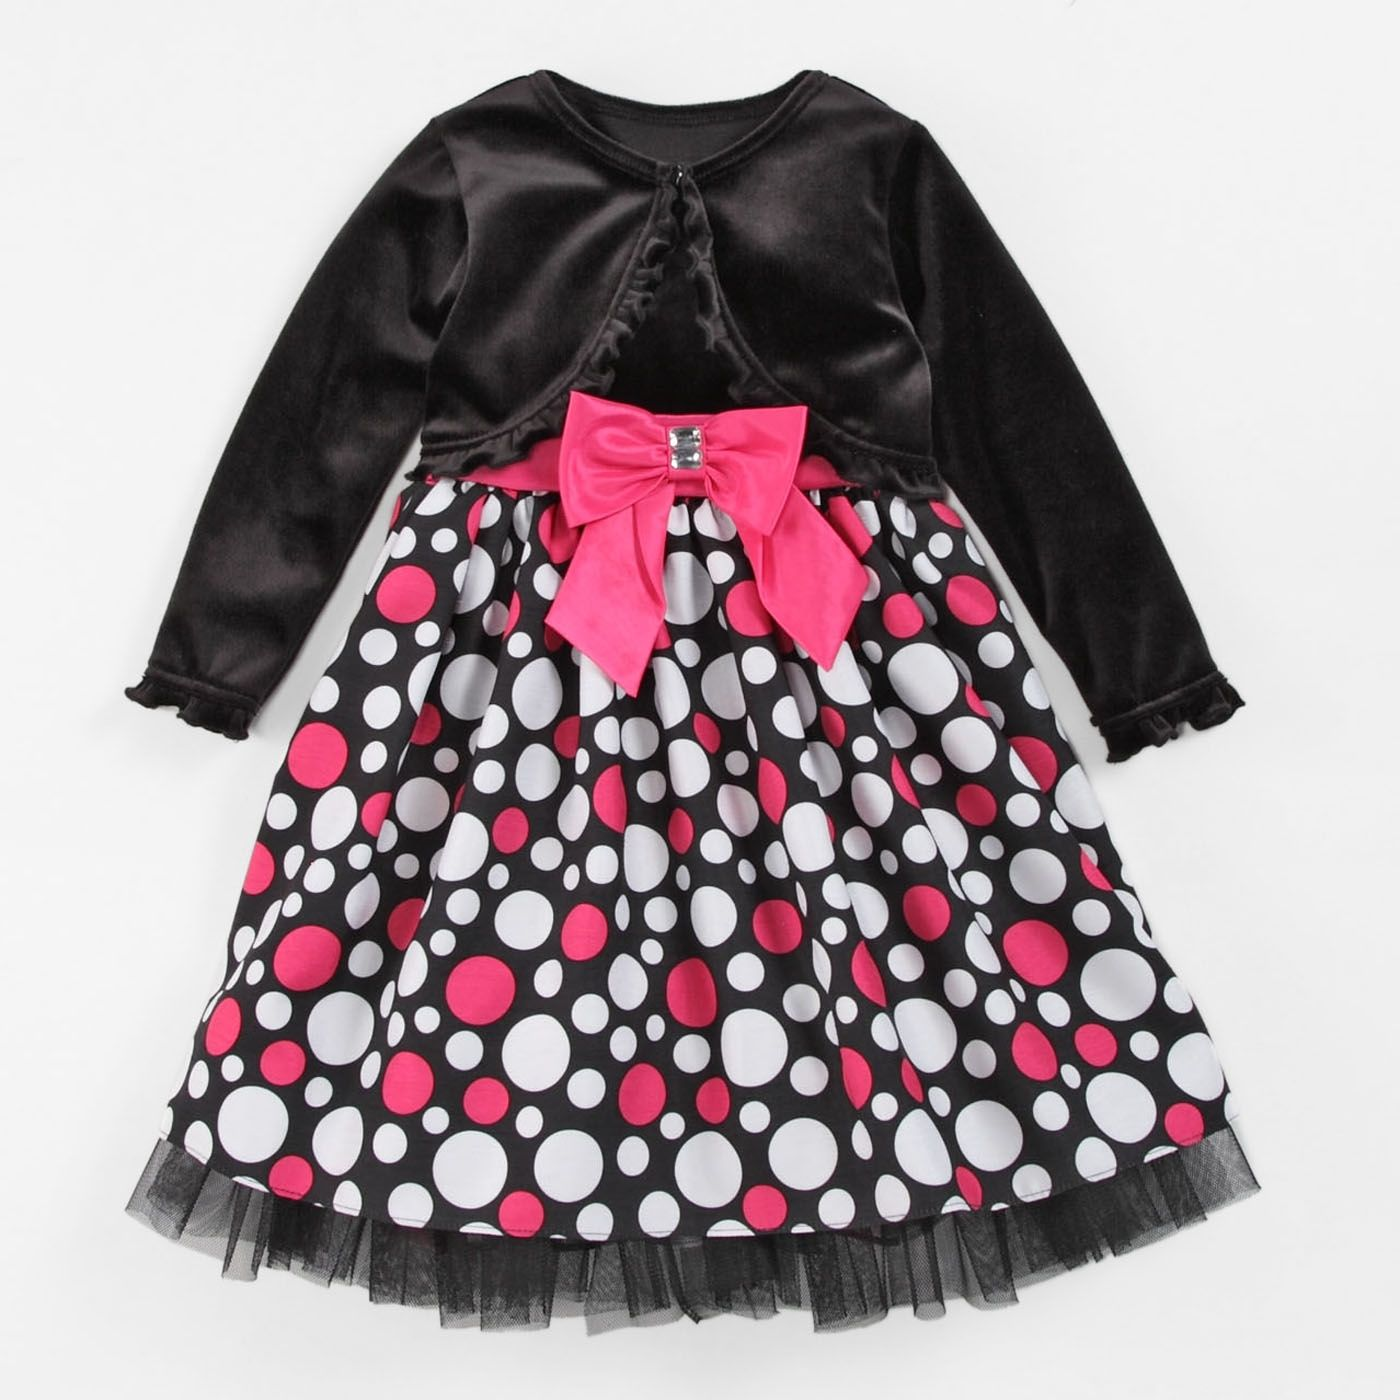 Infant Toddler Girl 12m 5t Youngland Toddler Girl Holiday Dress Shopko Com Holiday Dress Outfit Holiday Outfits Toddler Girl Holiday Dress [ 1400 x 1400 Pixel ]